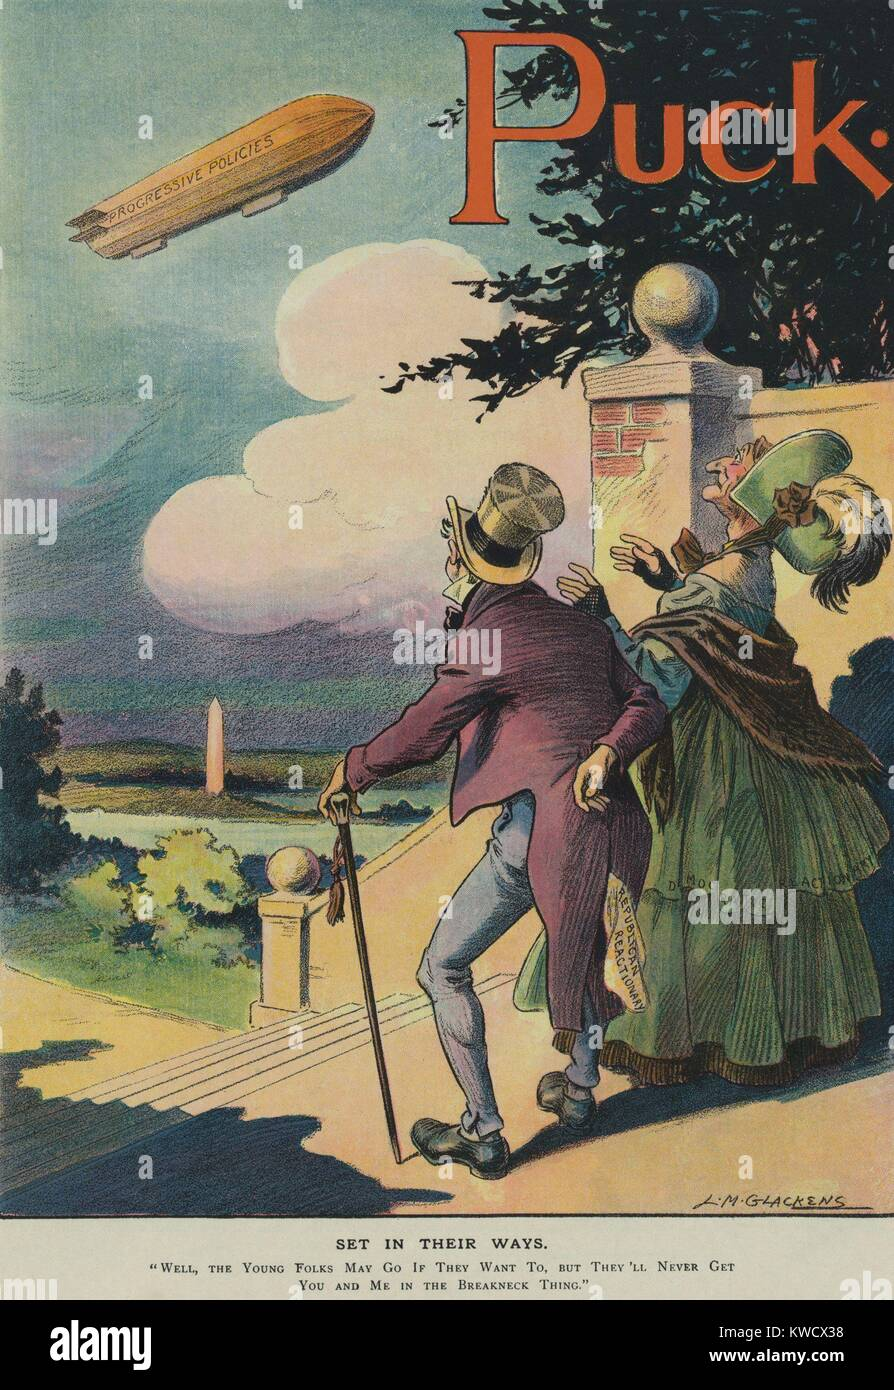 SET IN THEIR WAYS, a political cartoon about the Progressive Movement in the 1911. An elderly couple labeled Republican - Stock Image